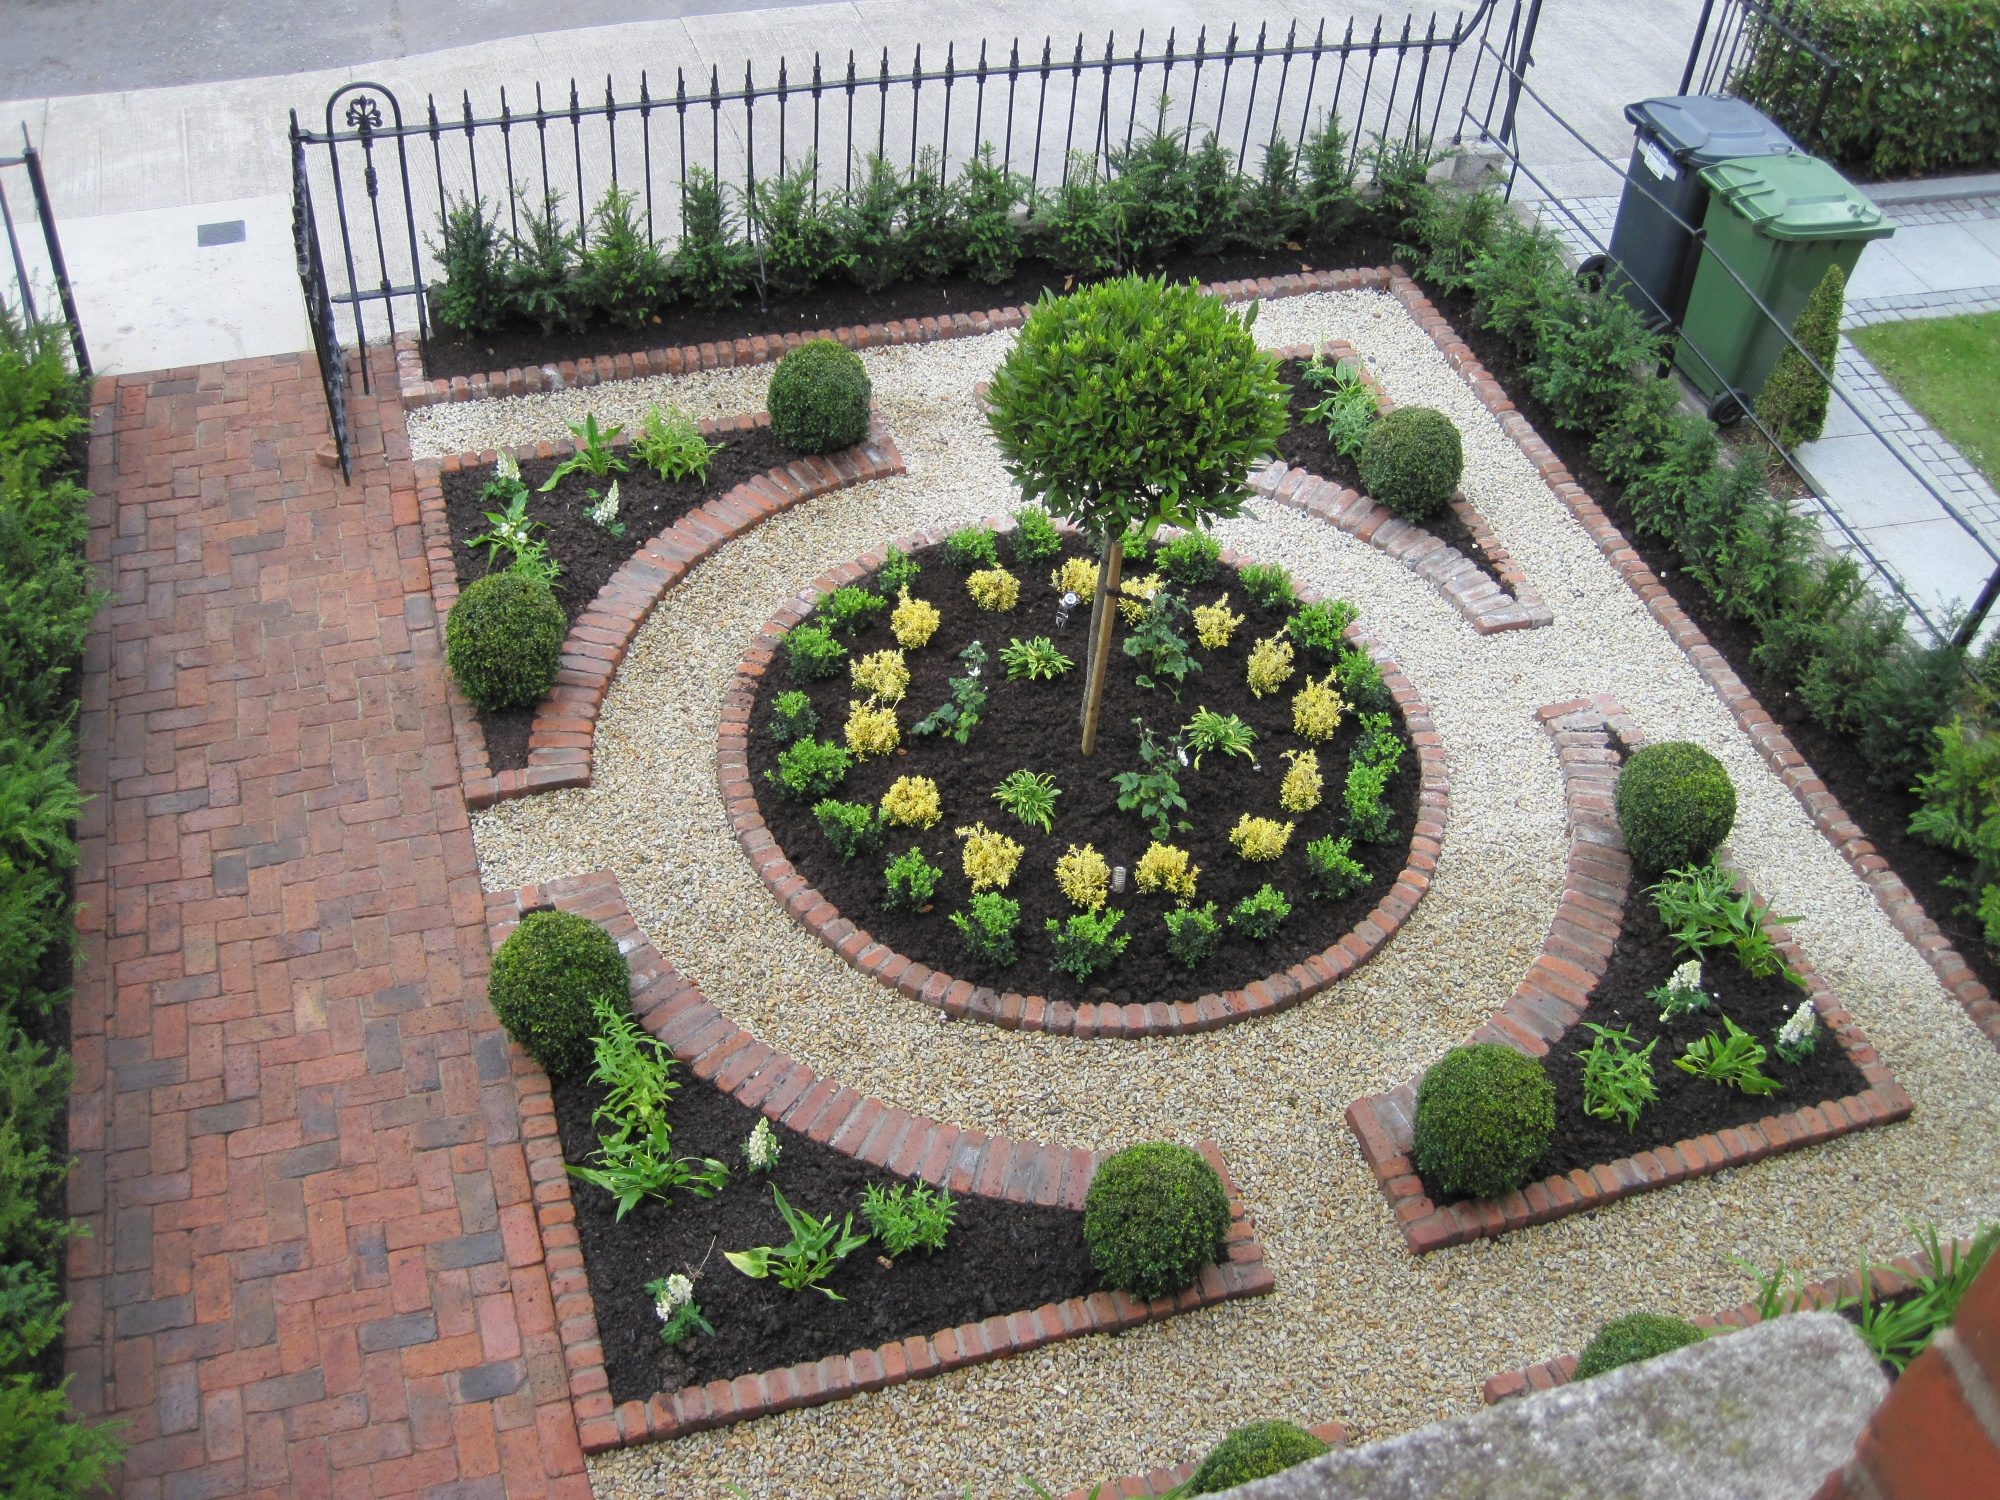 Garden design ideas inspiration advice for all styles for Garden plot layout ideas